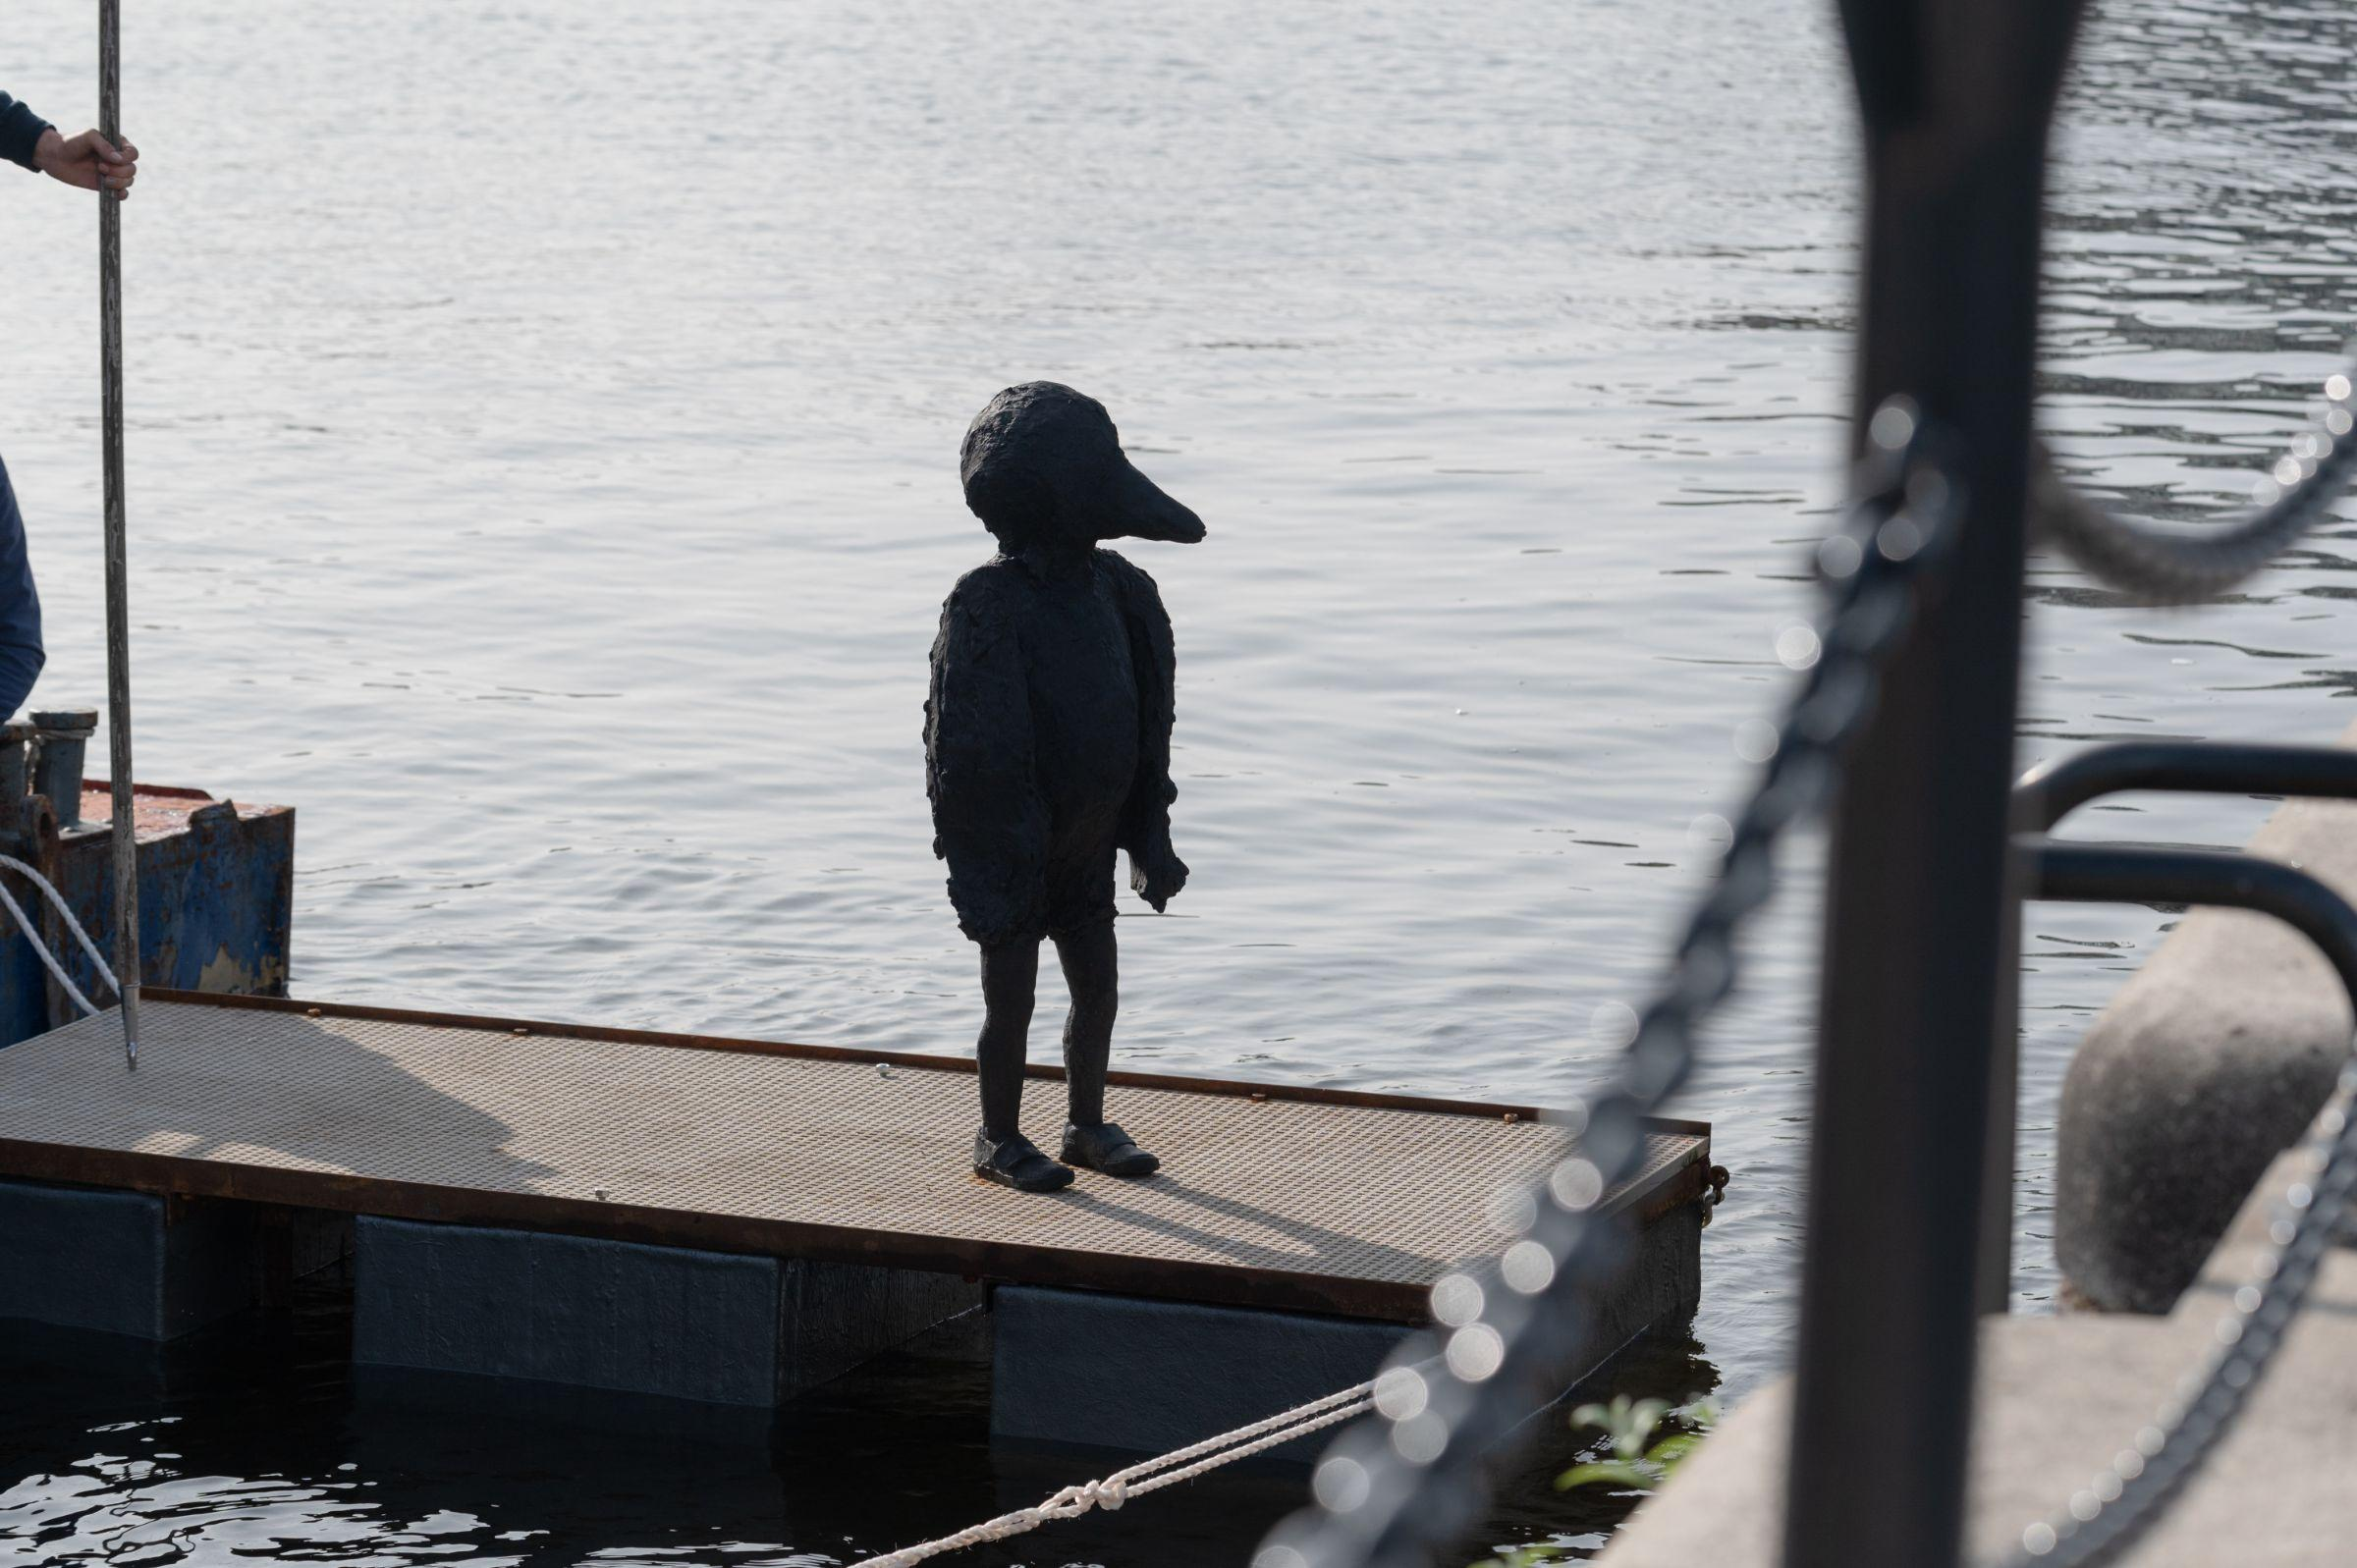 Statue that looks like a child with a bird's head, floating on a platform in the dock